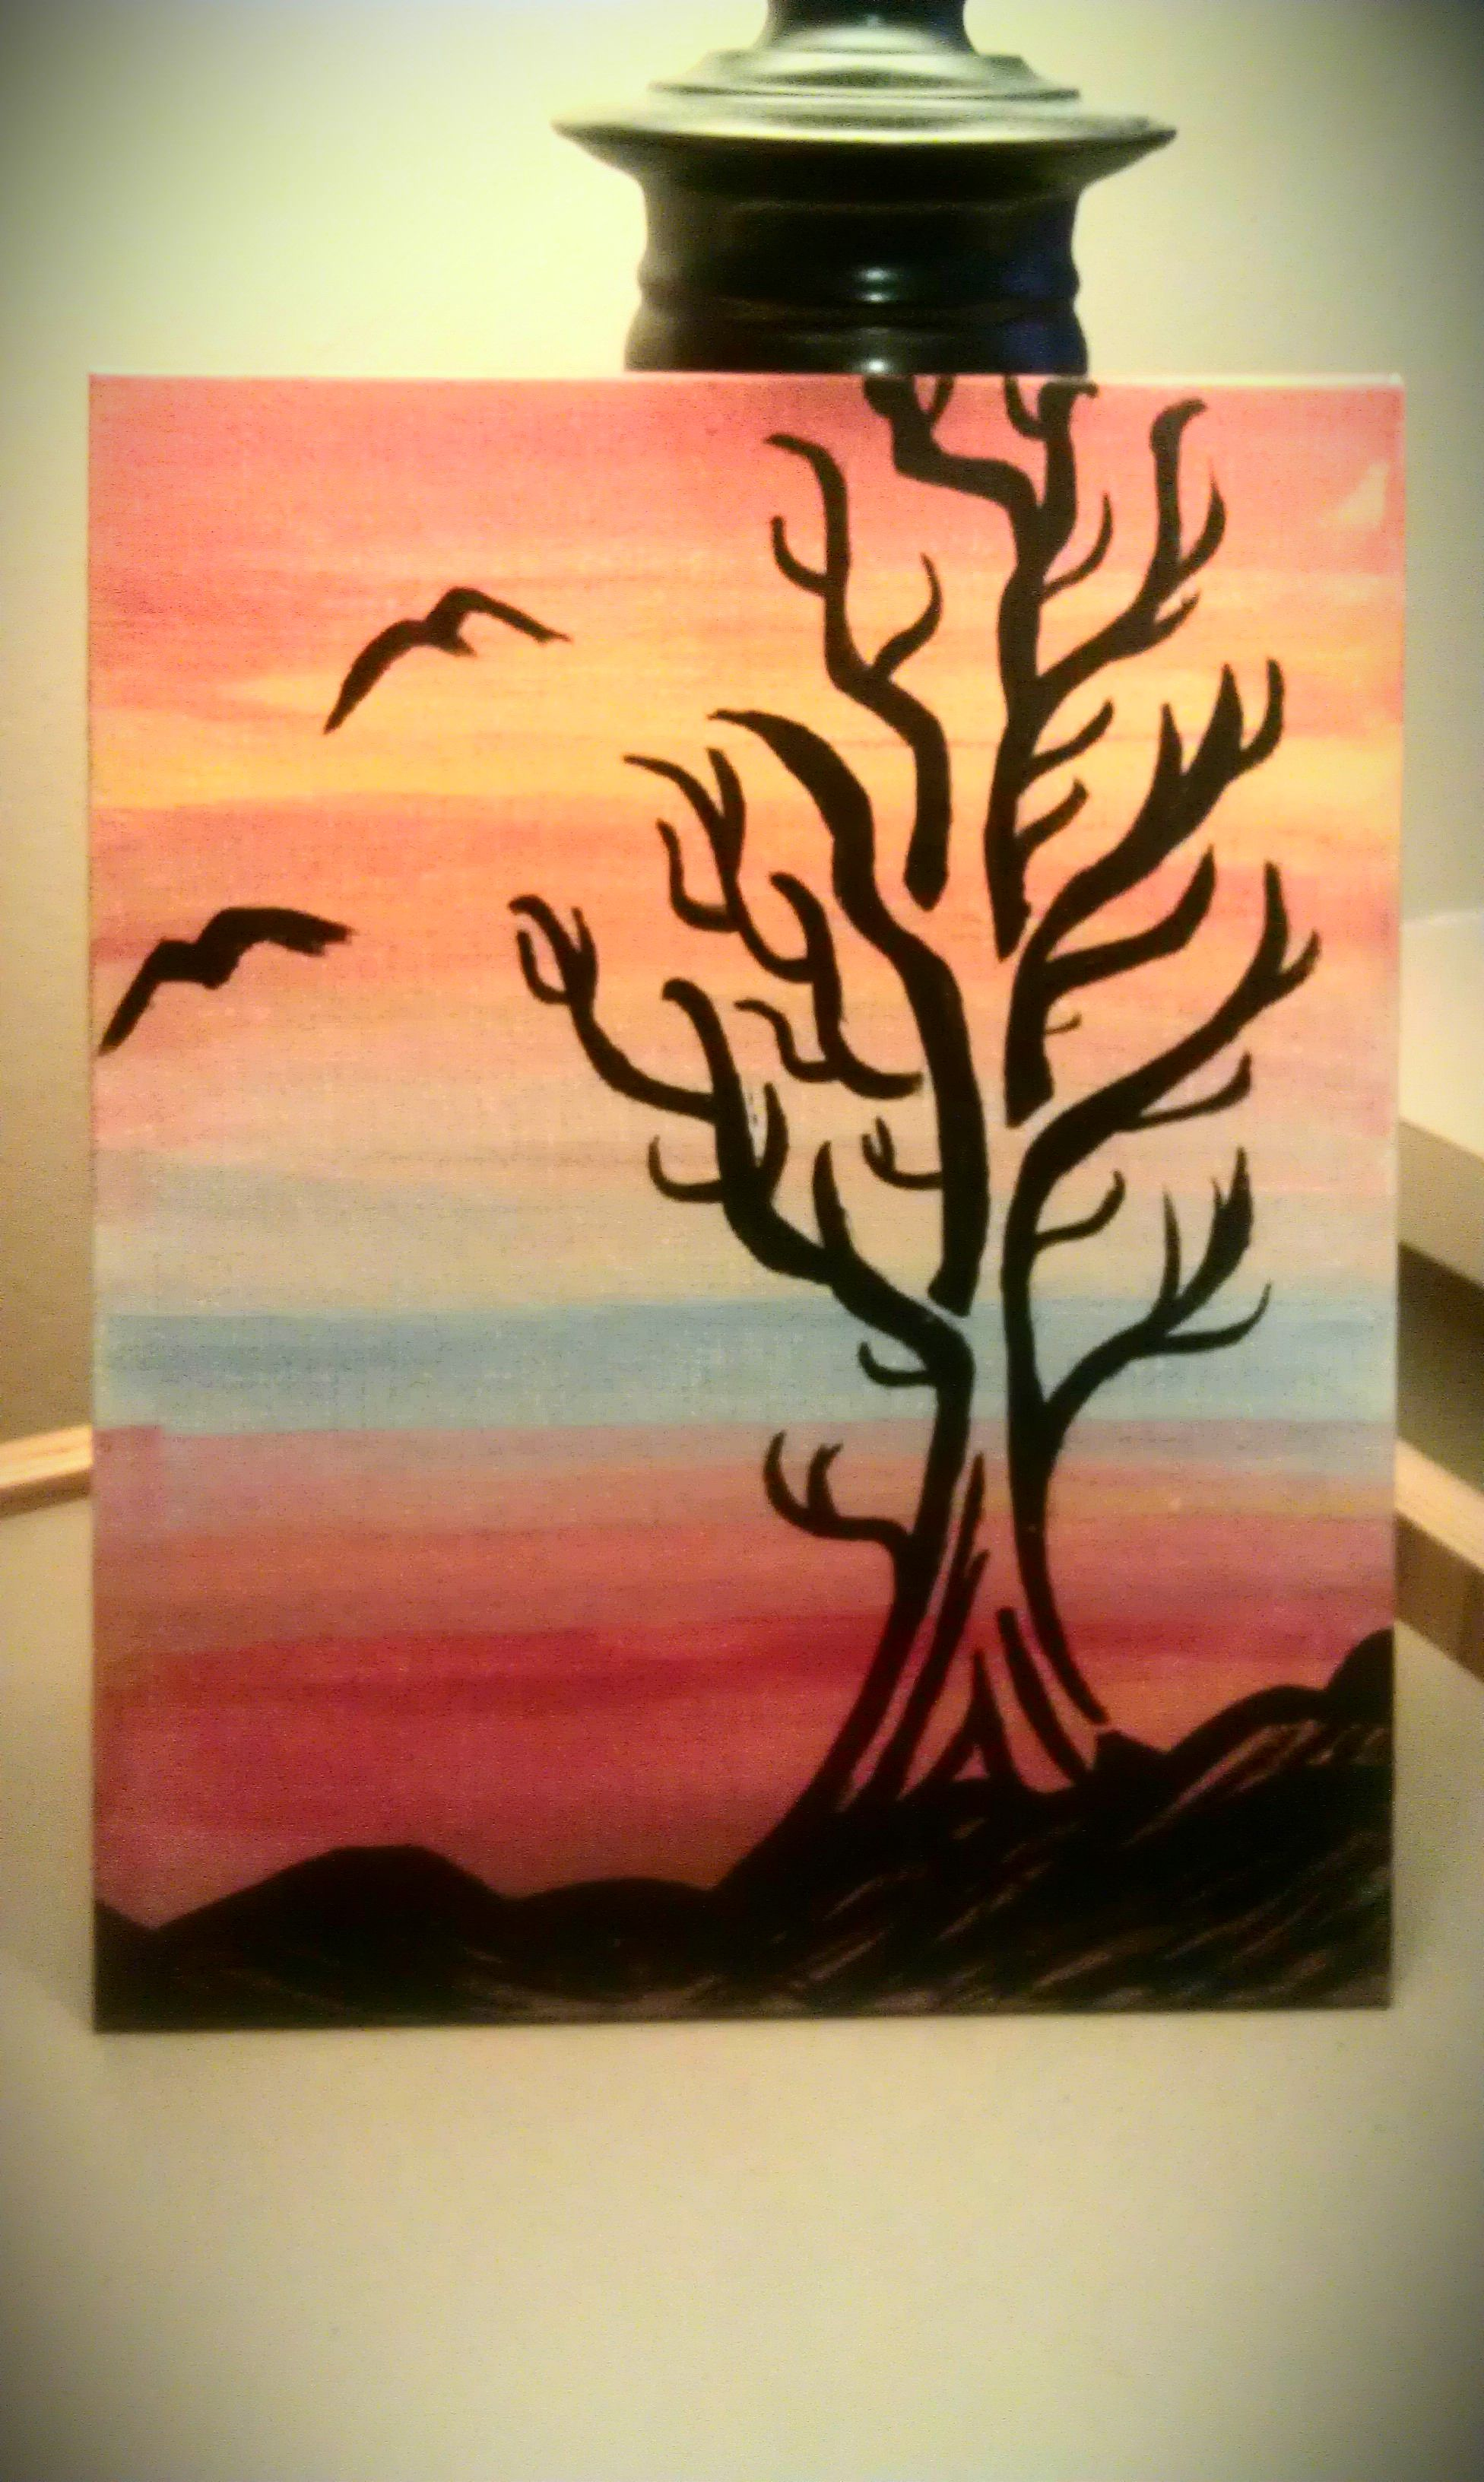 Just a painting I did for the